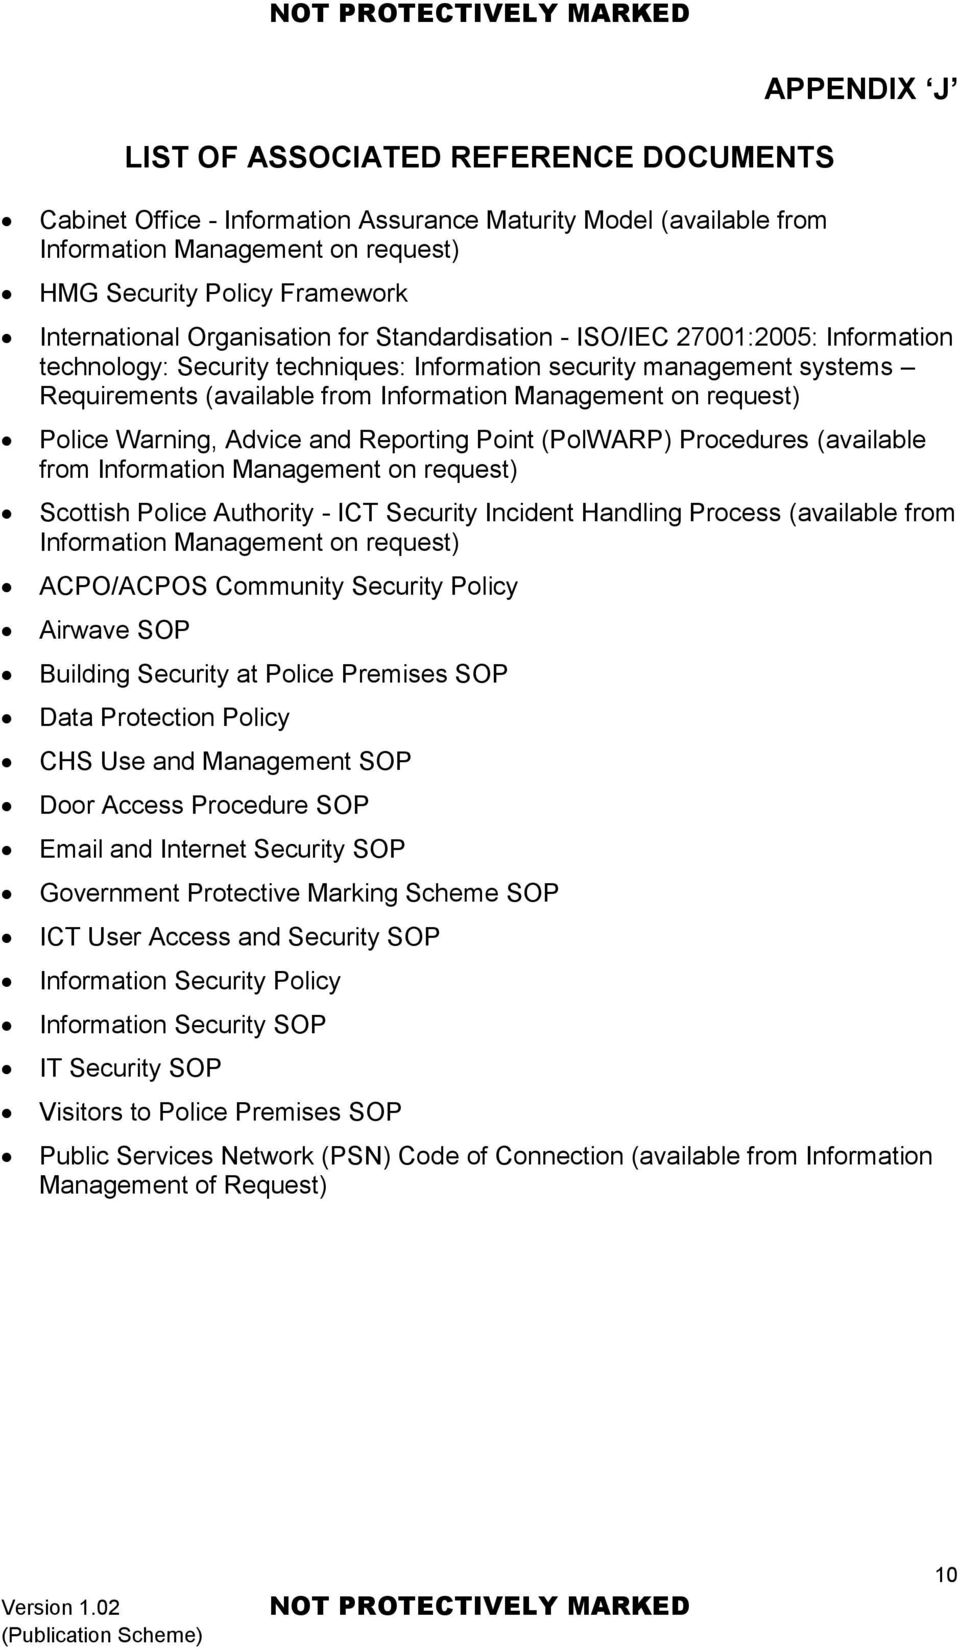 request) Police Warning, Advice and Reporting Point (PolWARP) Procedures (available from Information Management on request) Scottish Police Authority - ICT Security Incident Handling Process